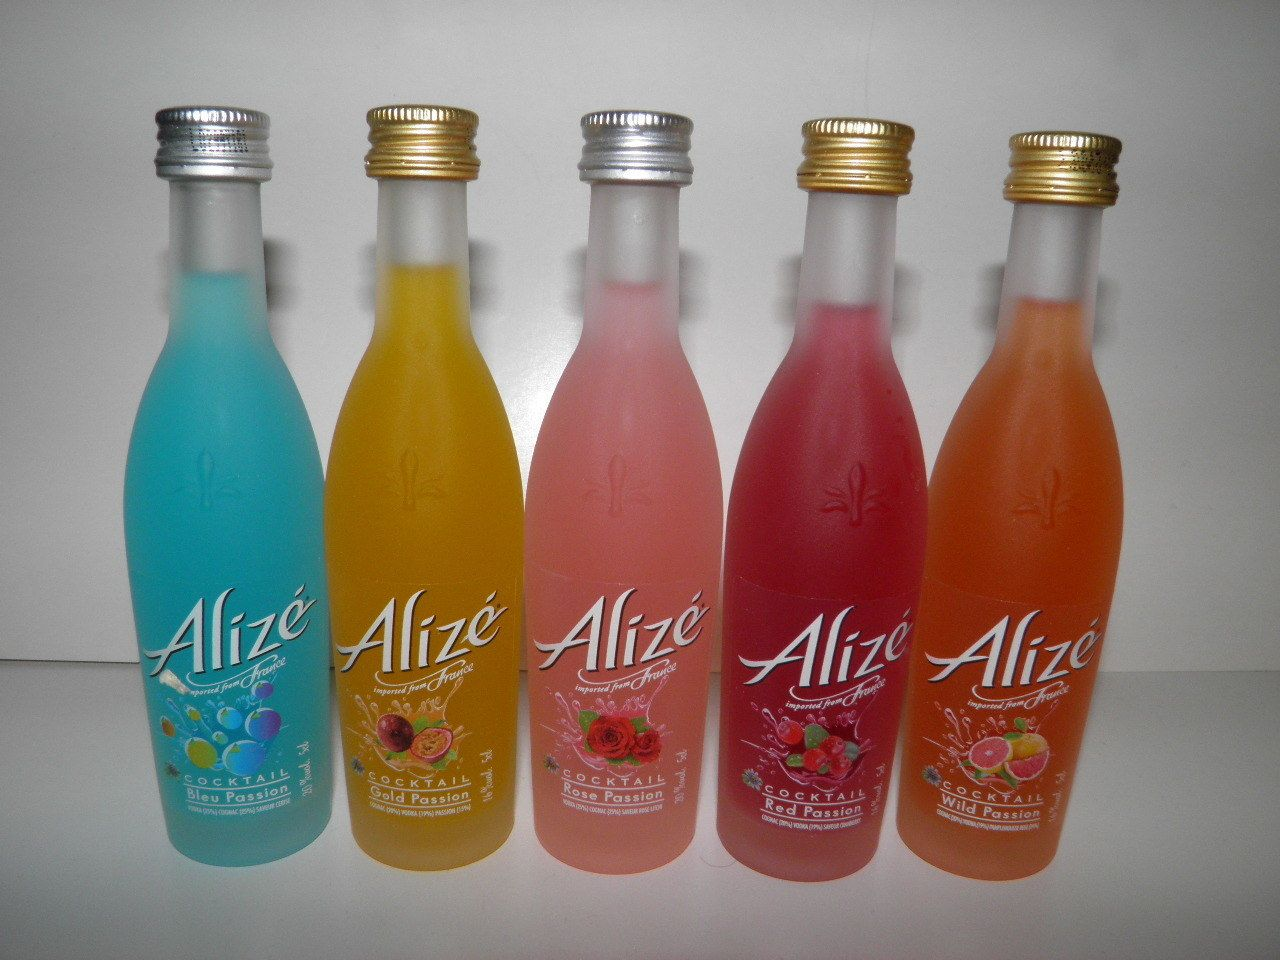 Alize Mini Liquor Alcohol Bottles Smoothie Drinks Alcohol Bottles Alcohol